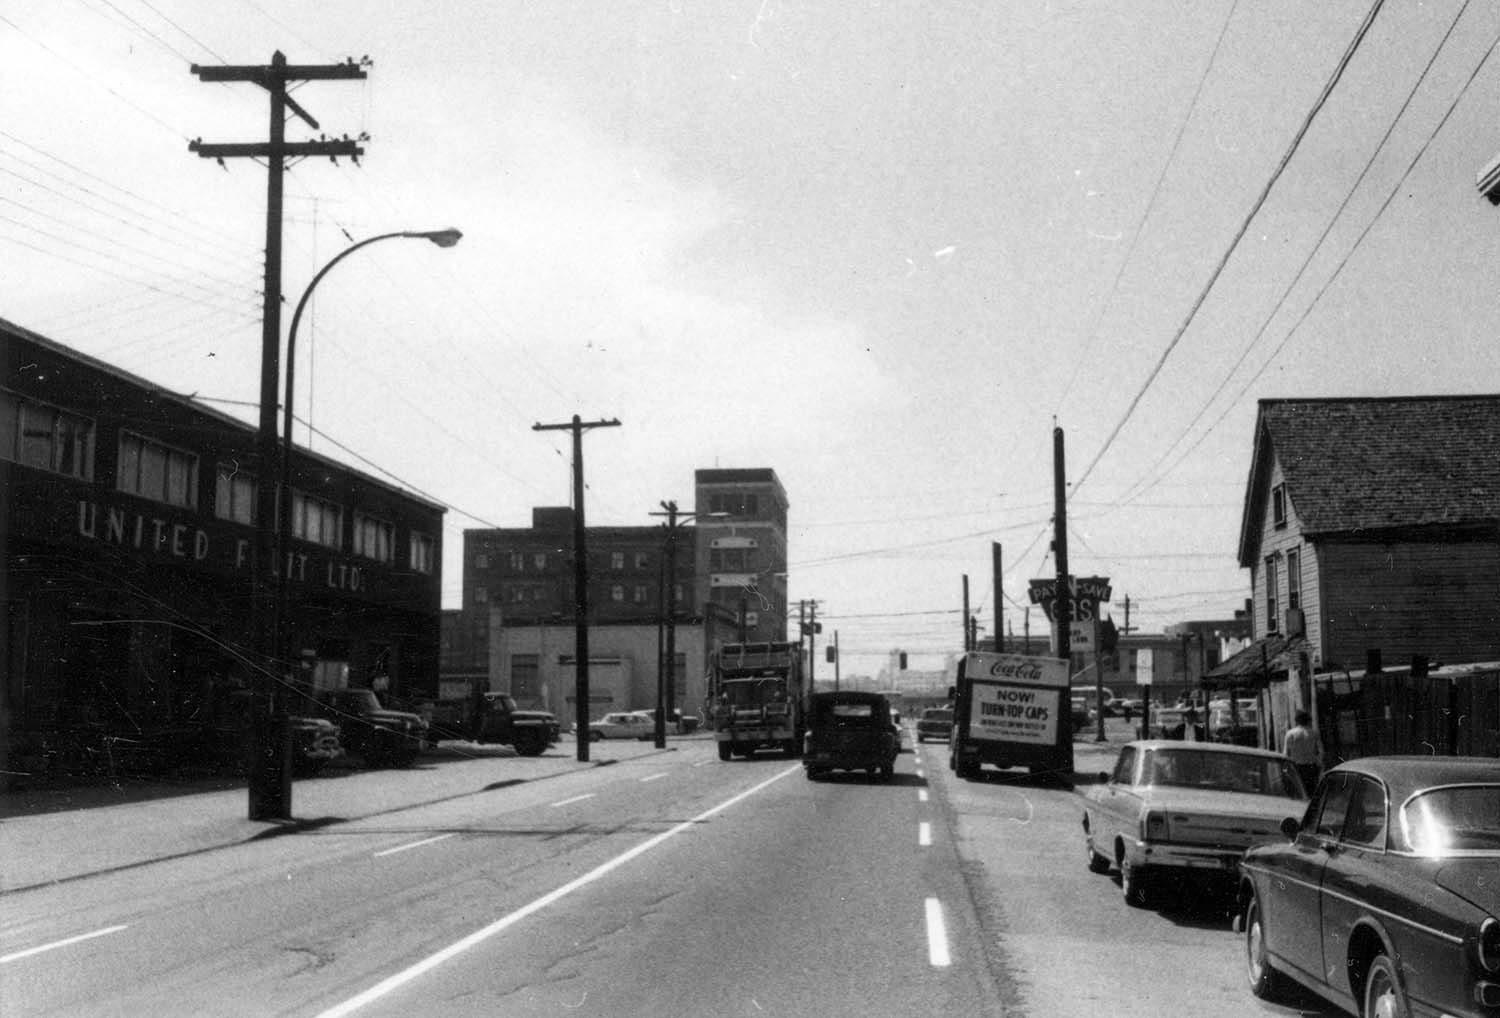 Aspect looking west along Prior Street with subject property [Iberica Garage and Northland Cafe 219 - 221 Prior Street] on right side, 1969. Reference code COV-S168-: CVA 203-57